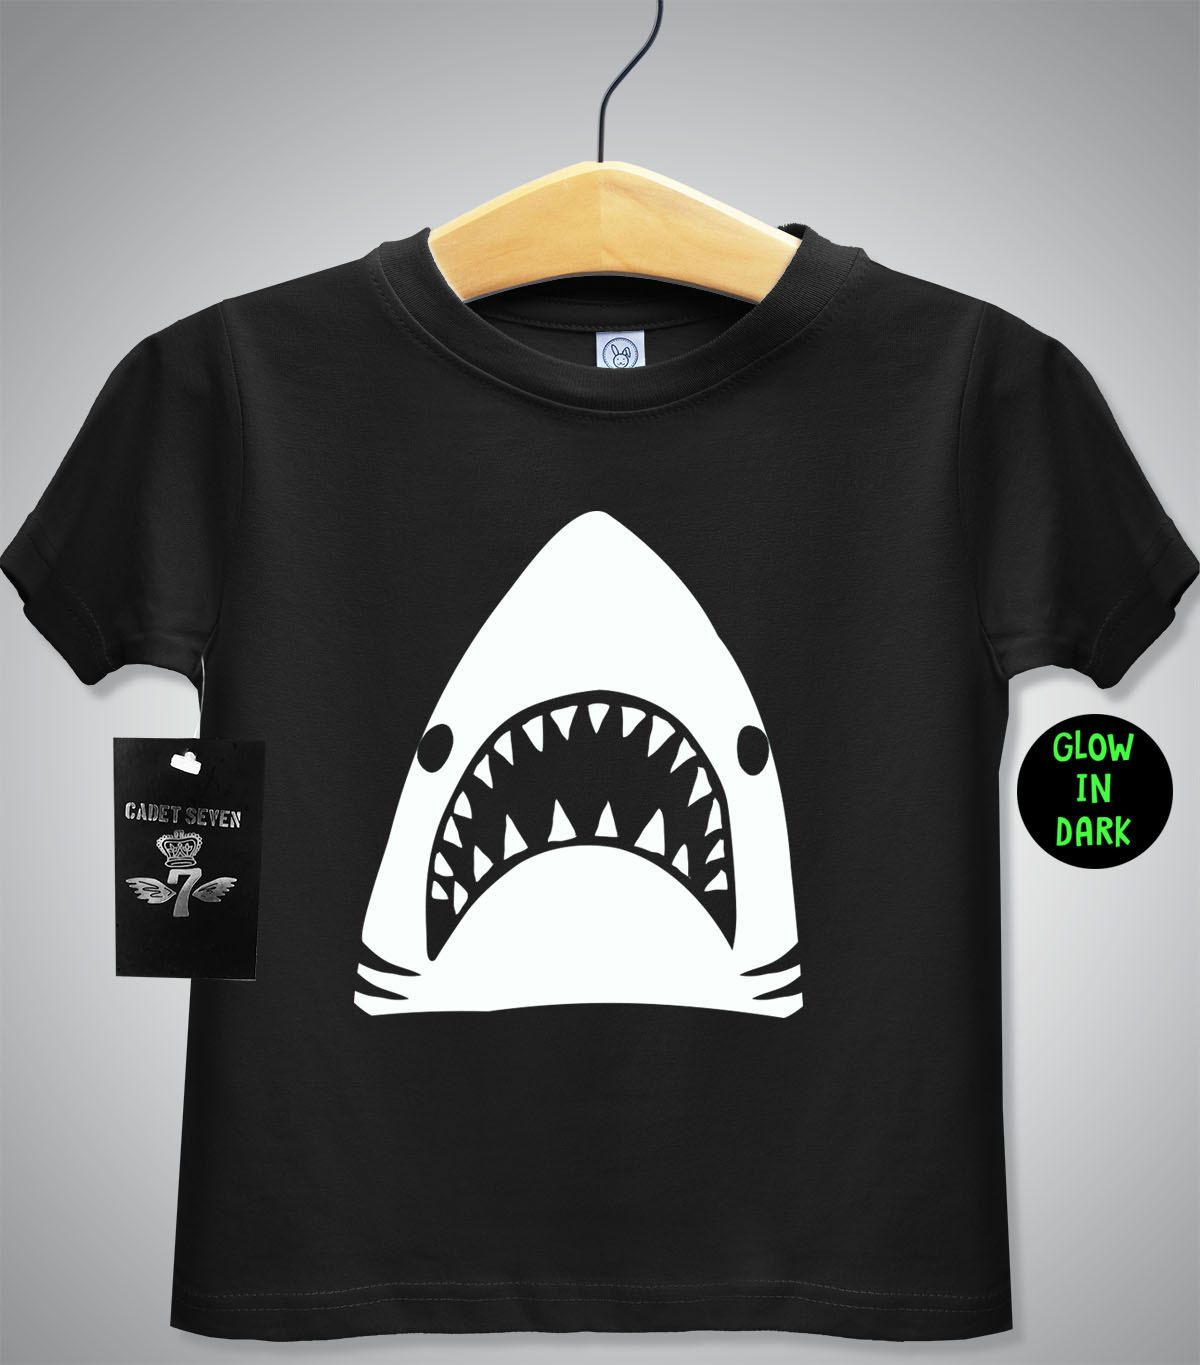 GLOW in THE DARK shark tshirt, baby t shirt, toddler t shirt, funny ...